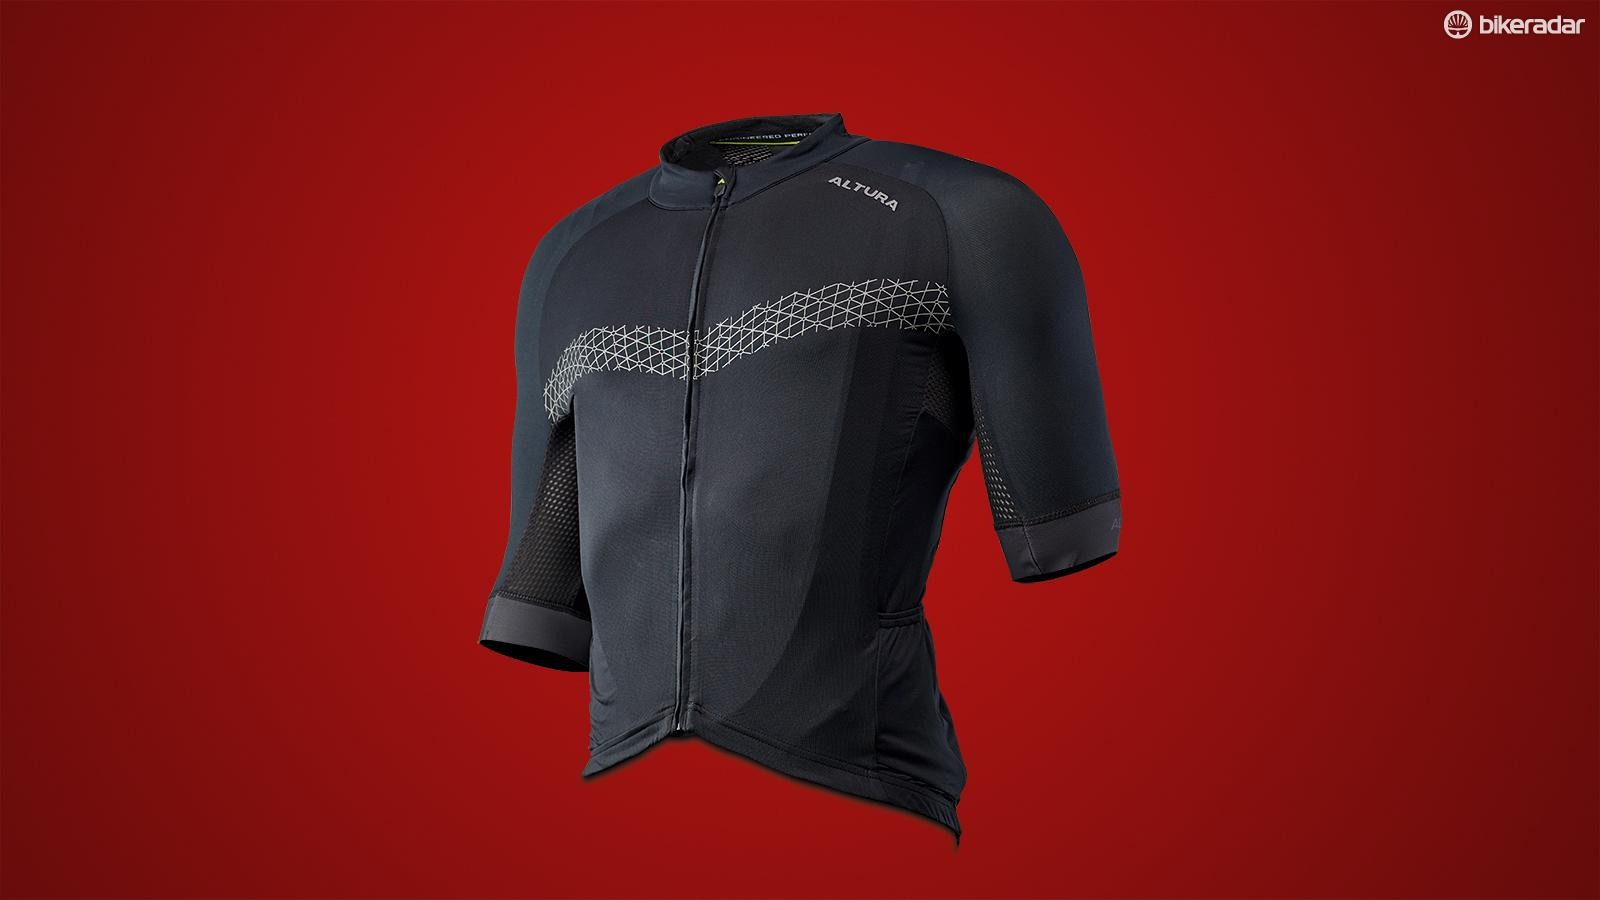 The jersey combines a tightly woven front panel with a more open mesh back